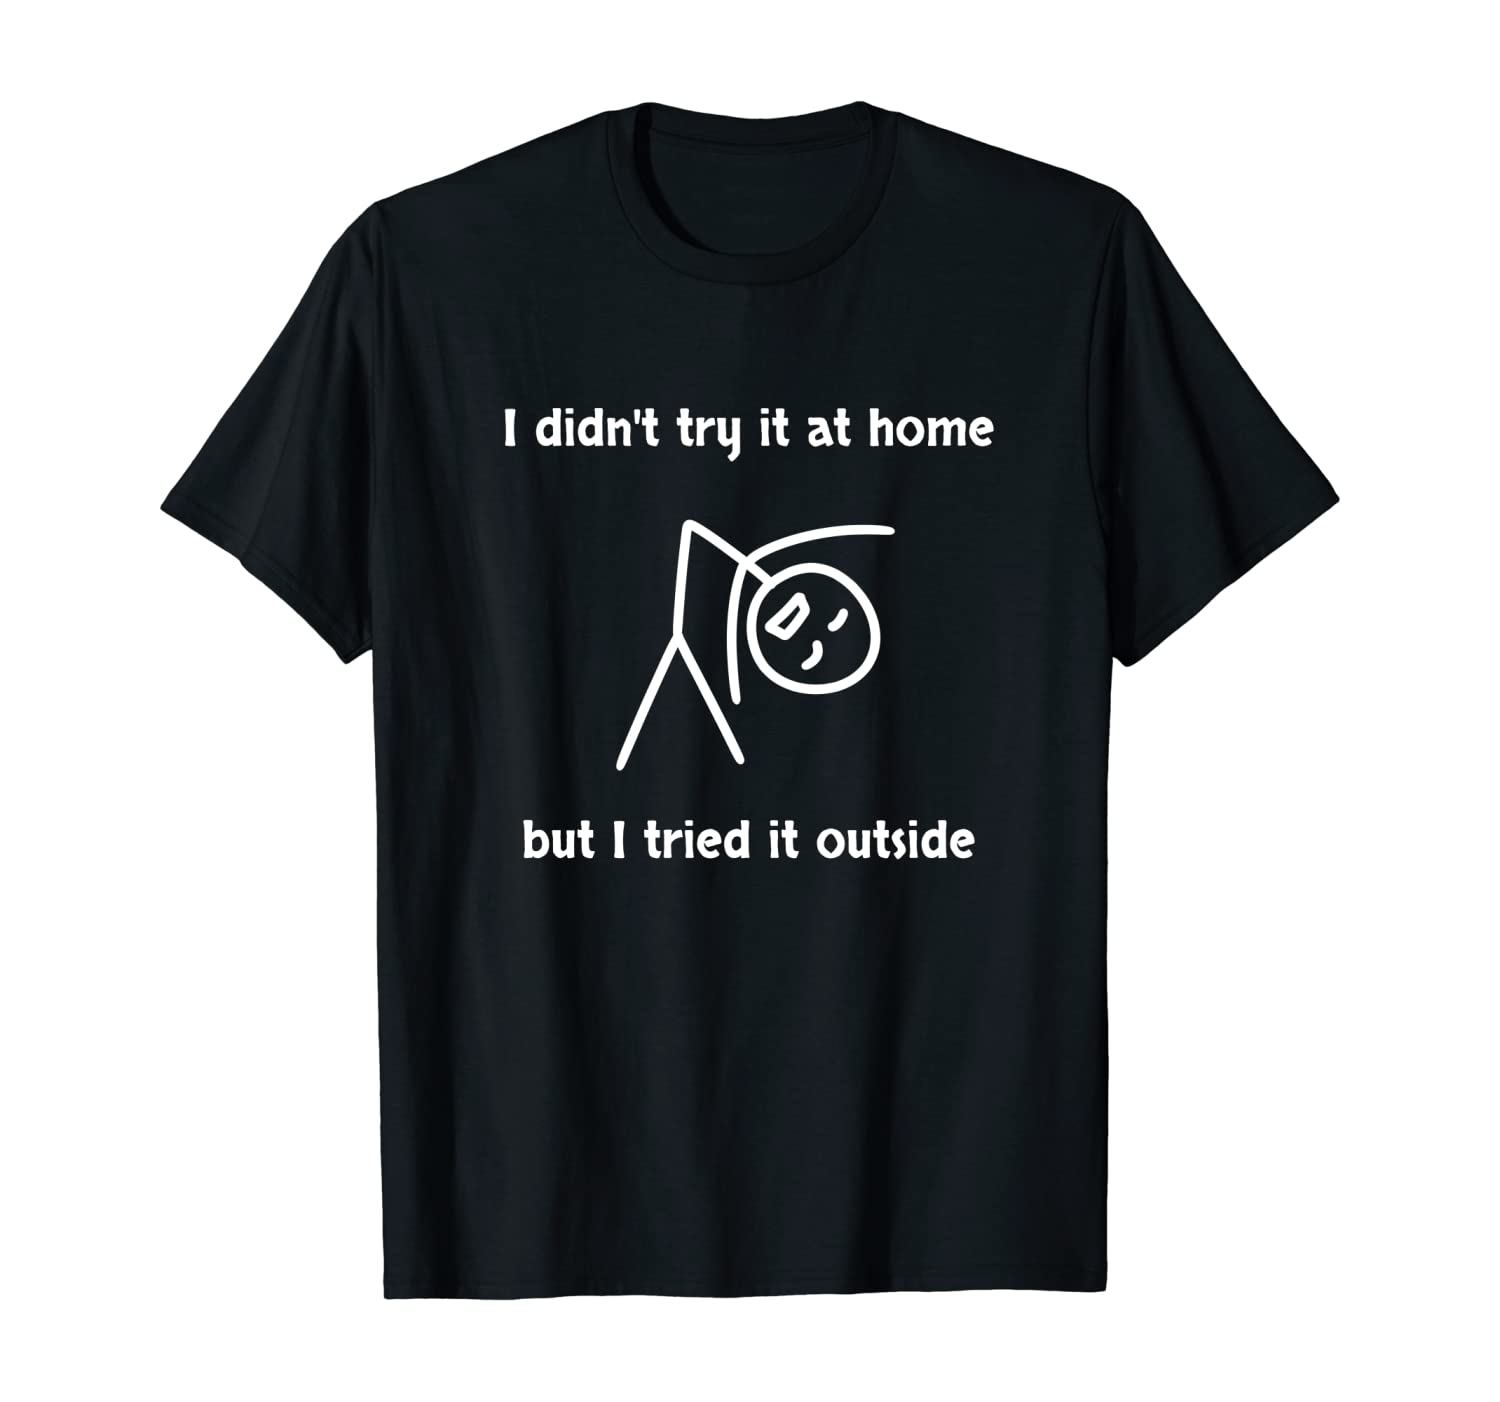 I tried it outside, didn't try at home funny graphic t-shirt